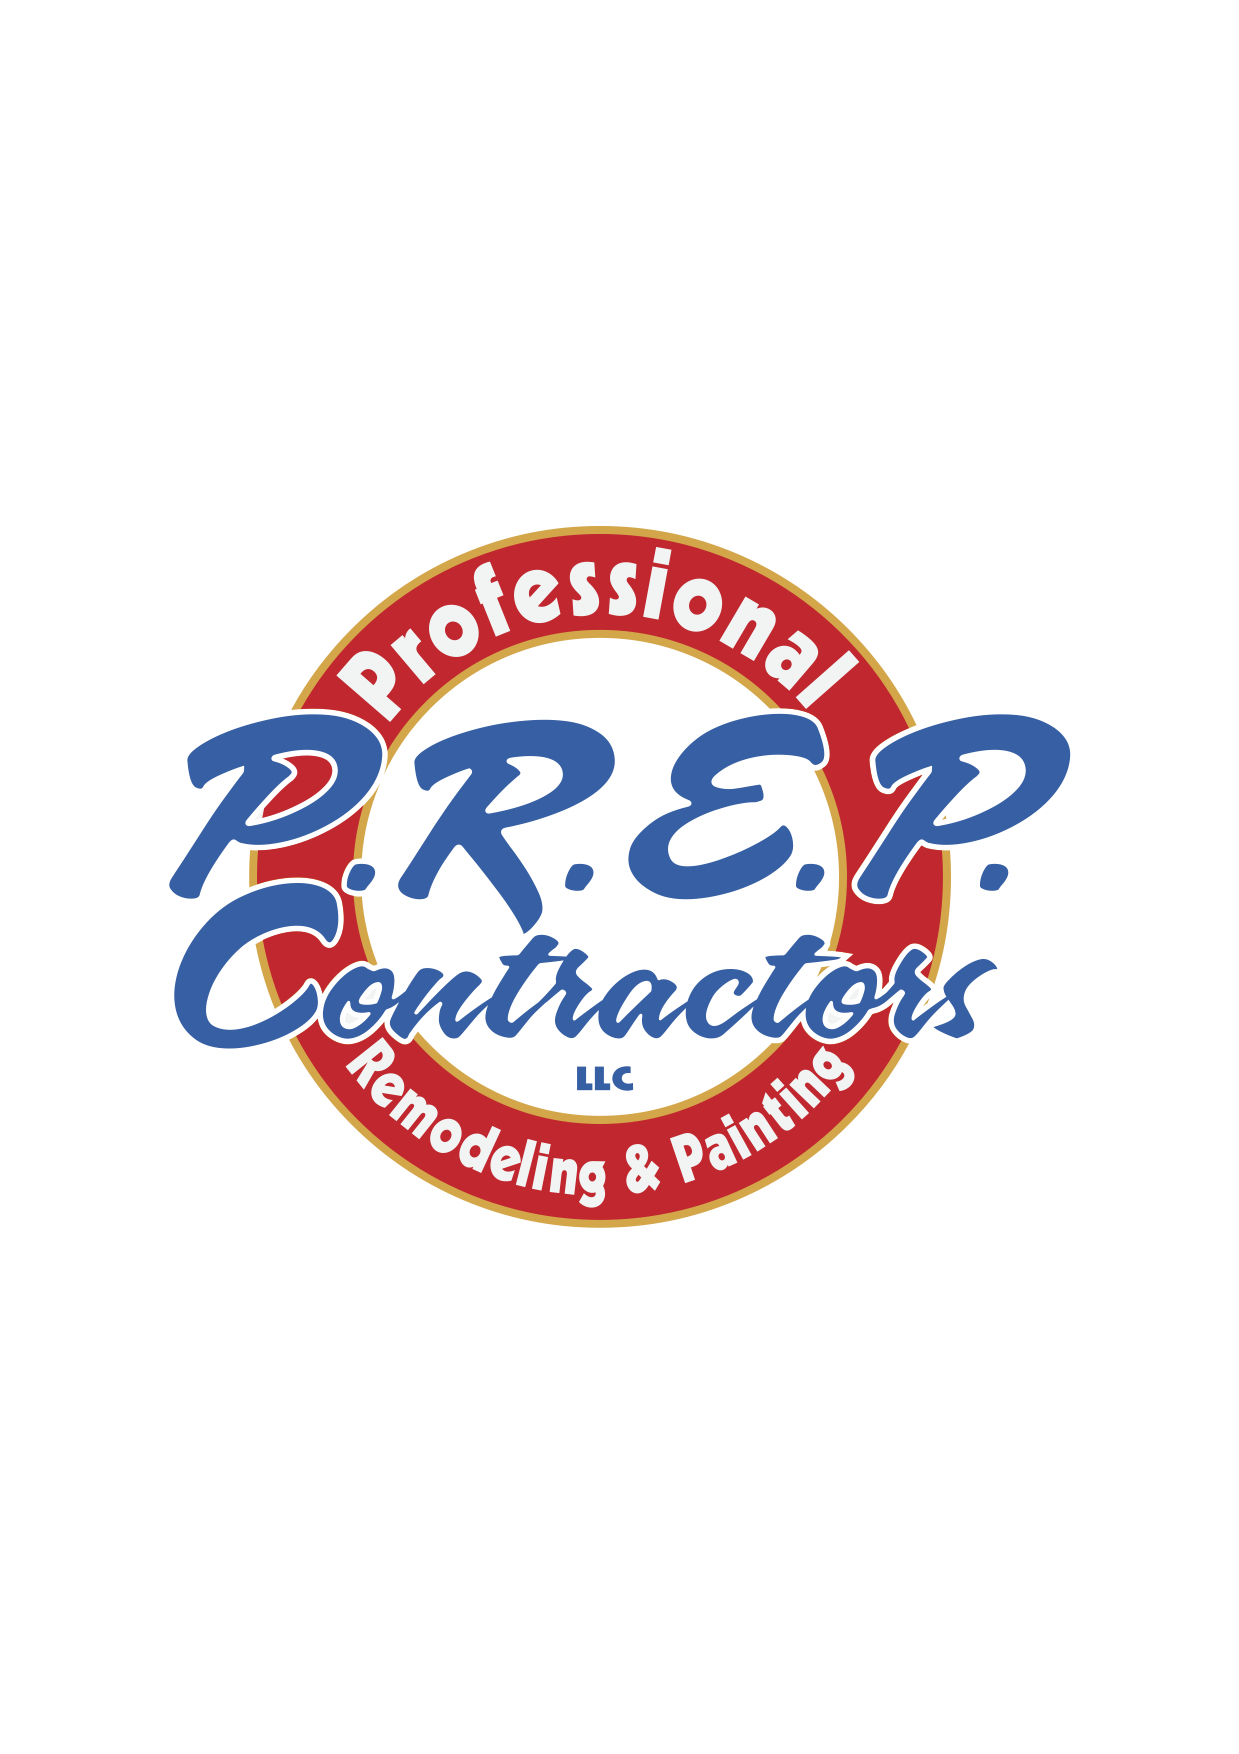 PREP TRAILER NEW LOGO small.jpg